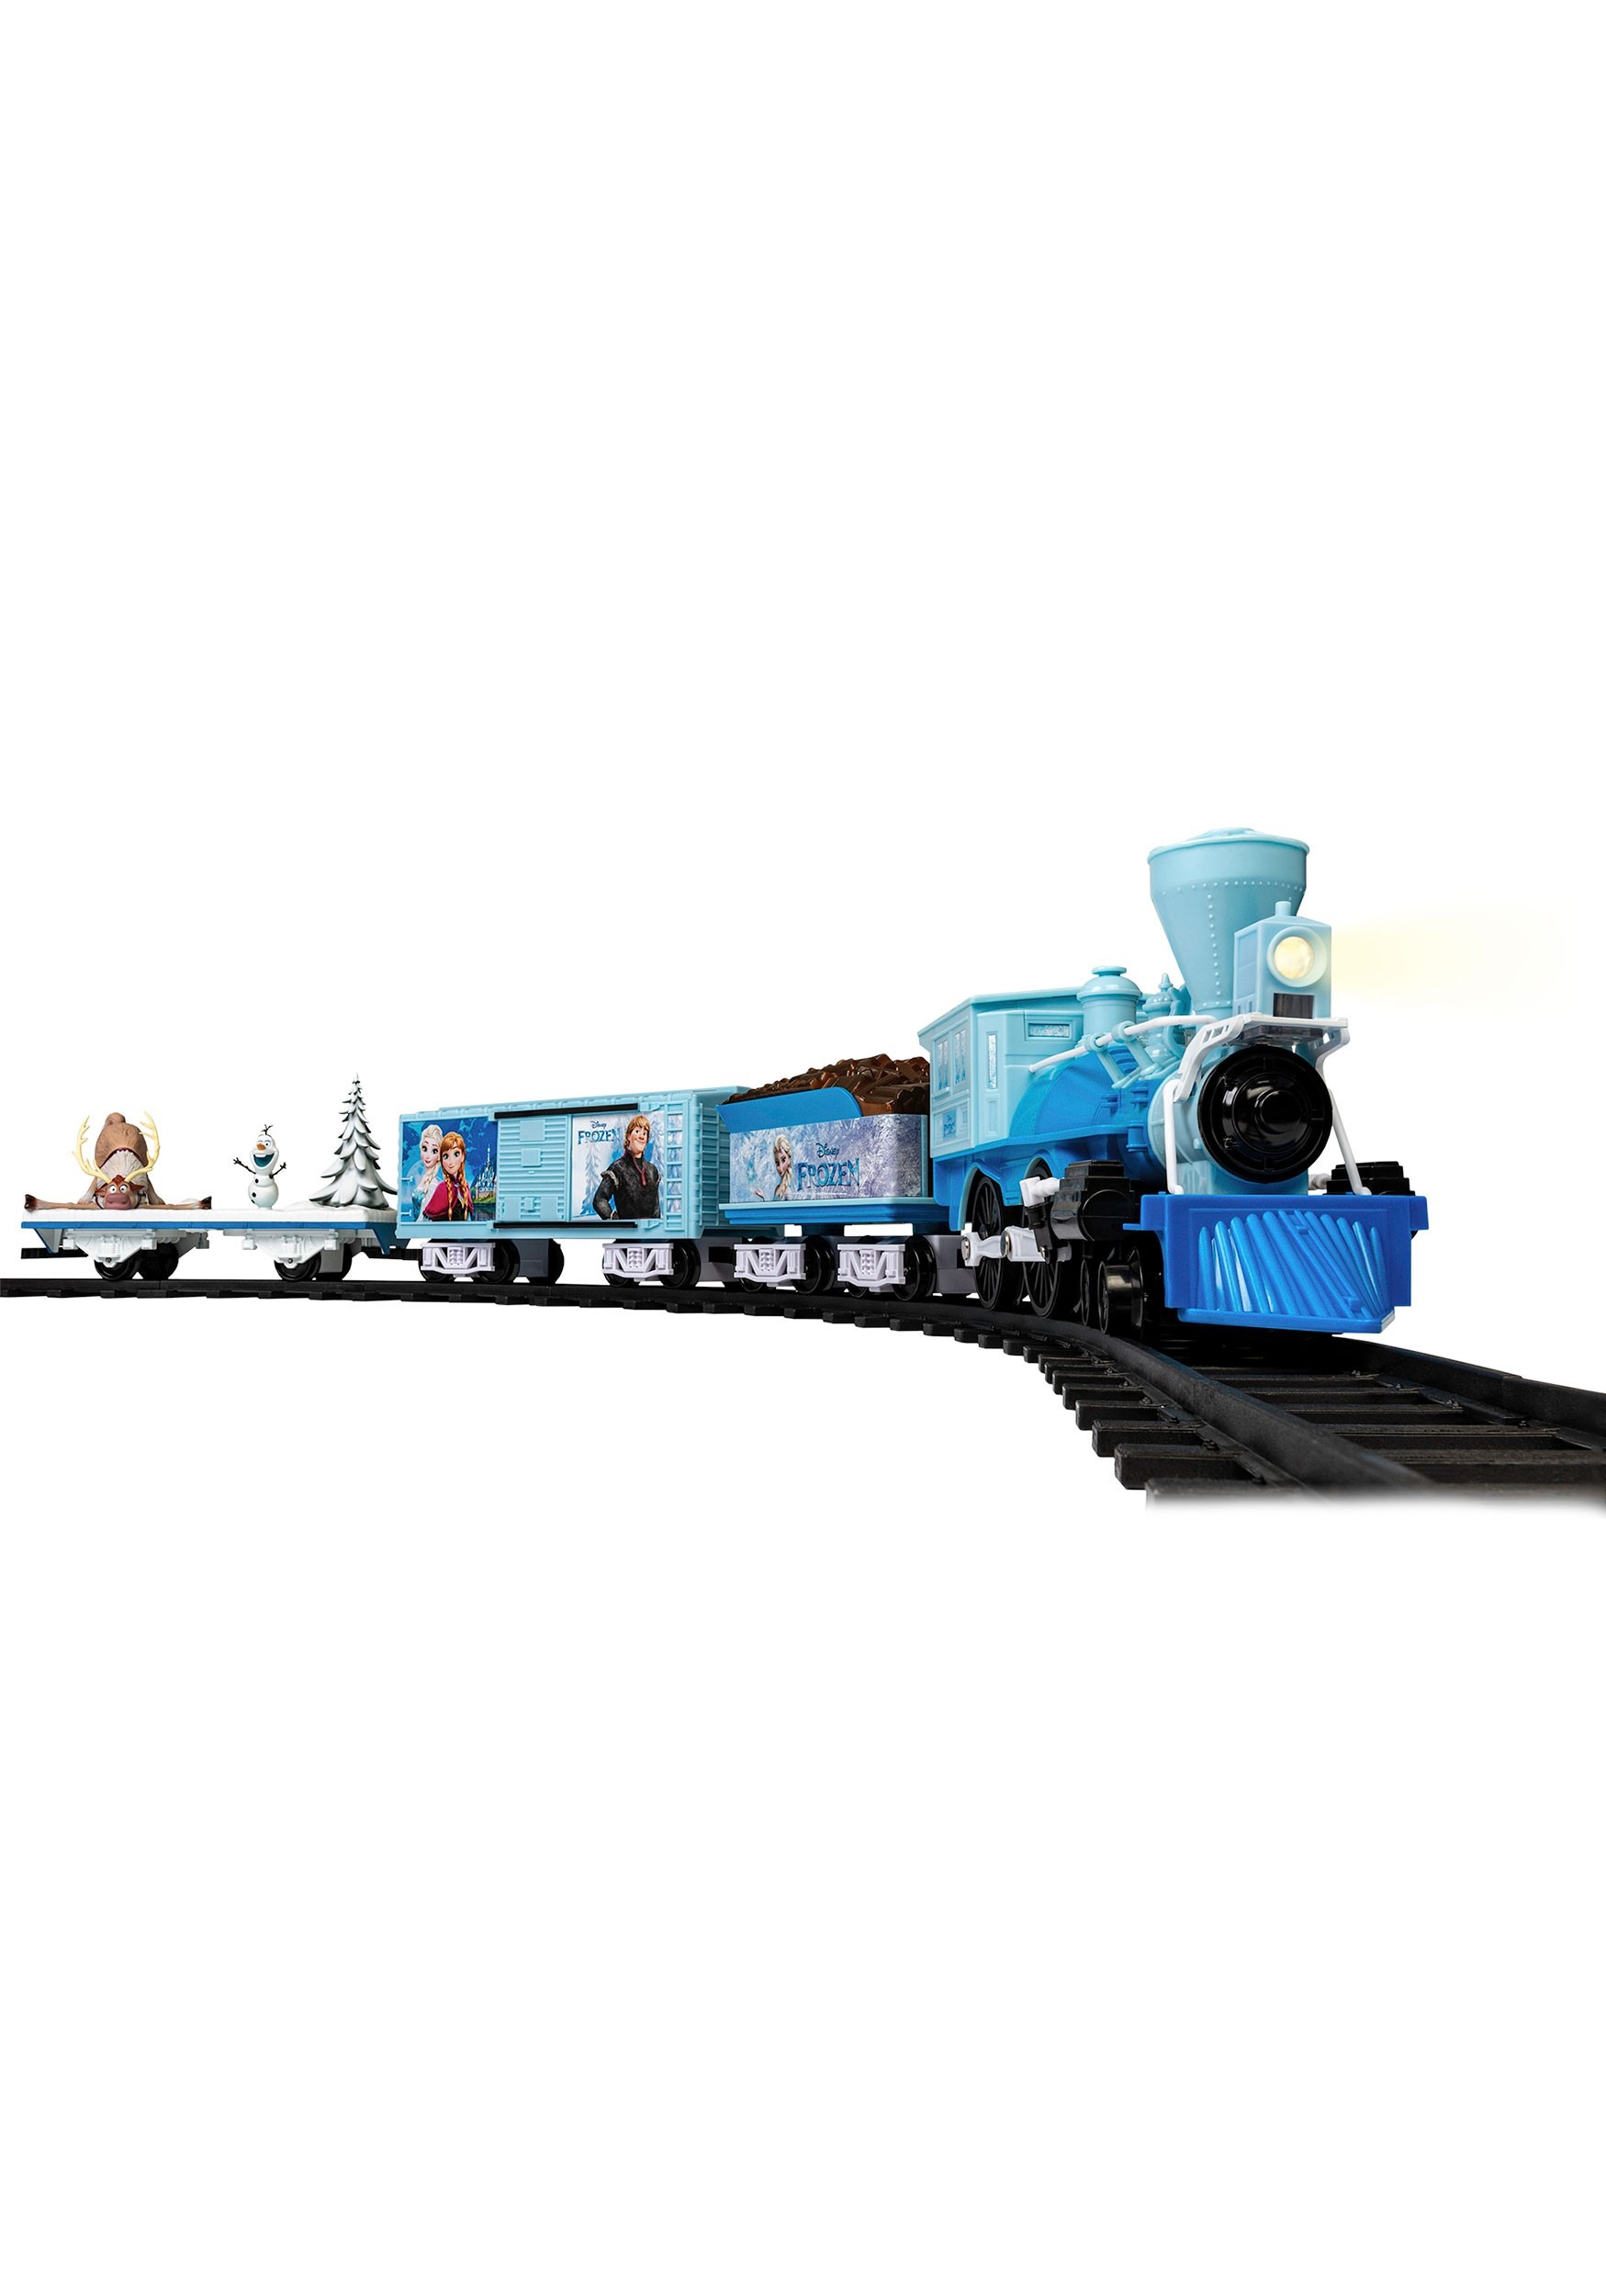 Ready-to-Play Lionel Train Set Disney Frozen